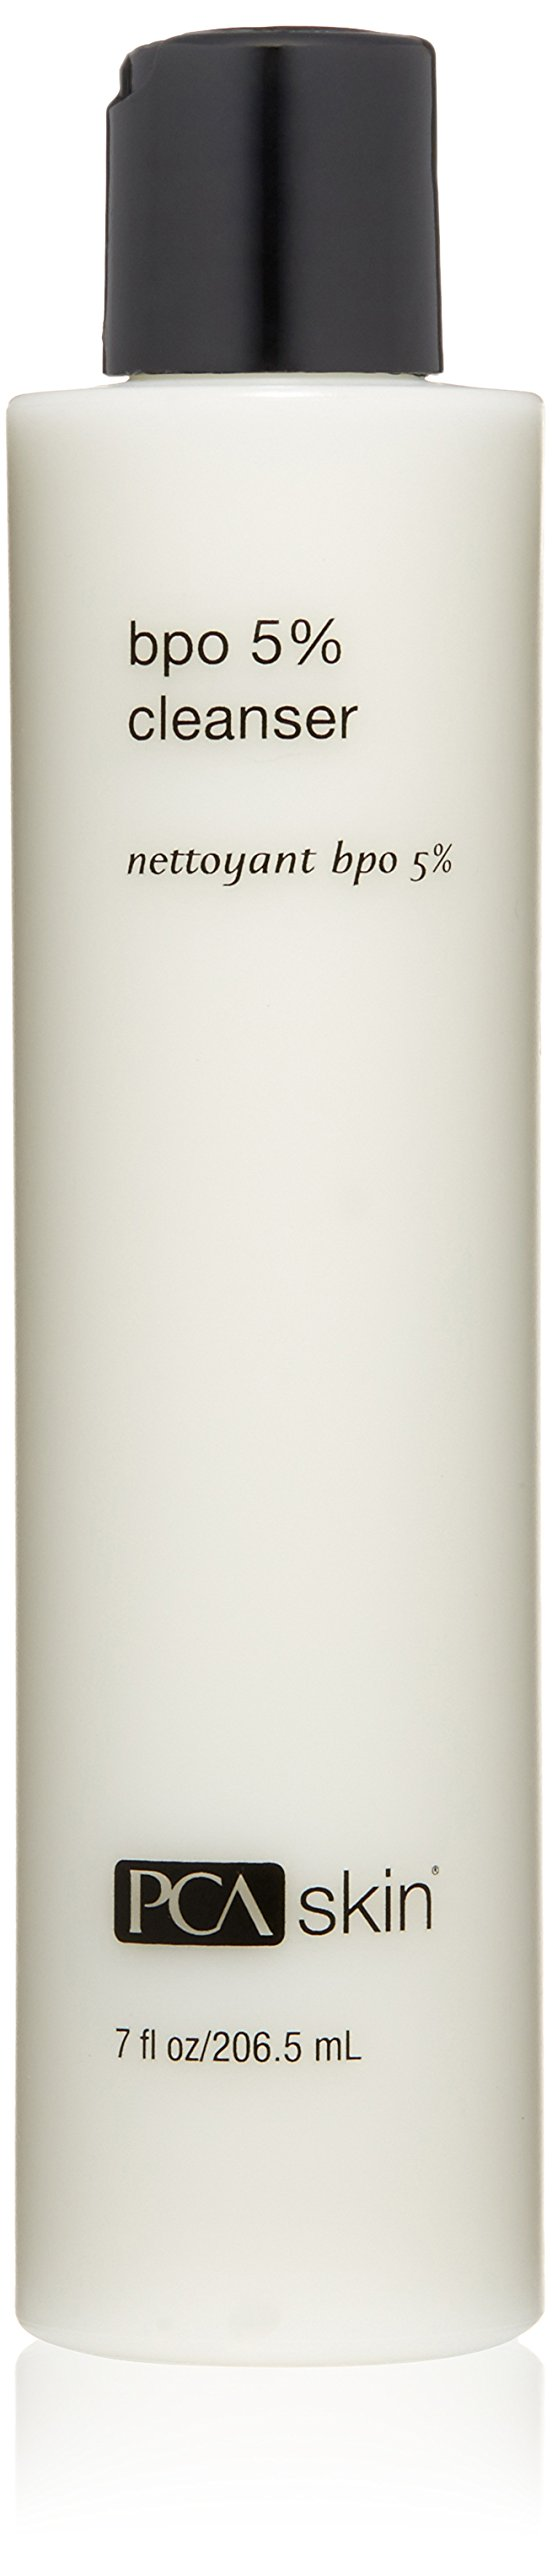 PCA SKIN BPO 5% Cleanser, Clarifying Daily Facial Wash, 7 fluid ounce by PCA SKIN